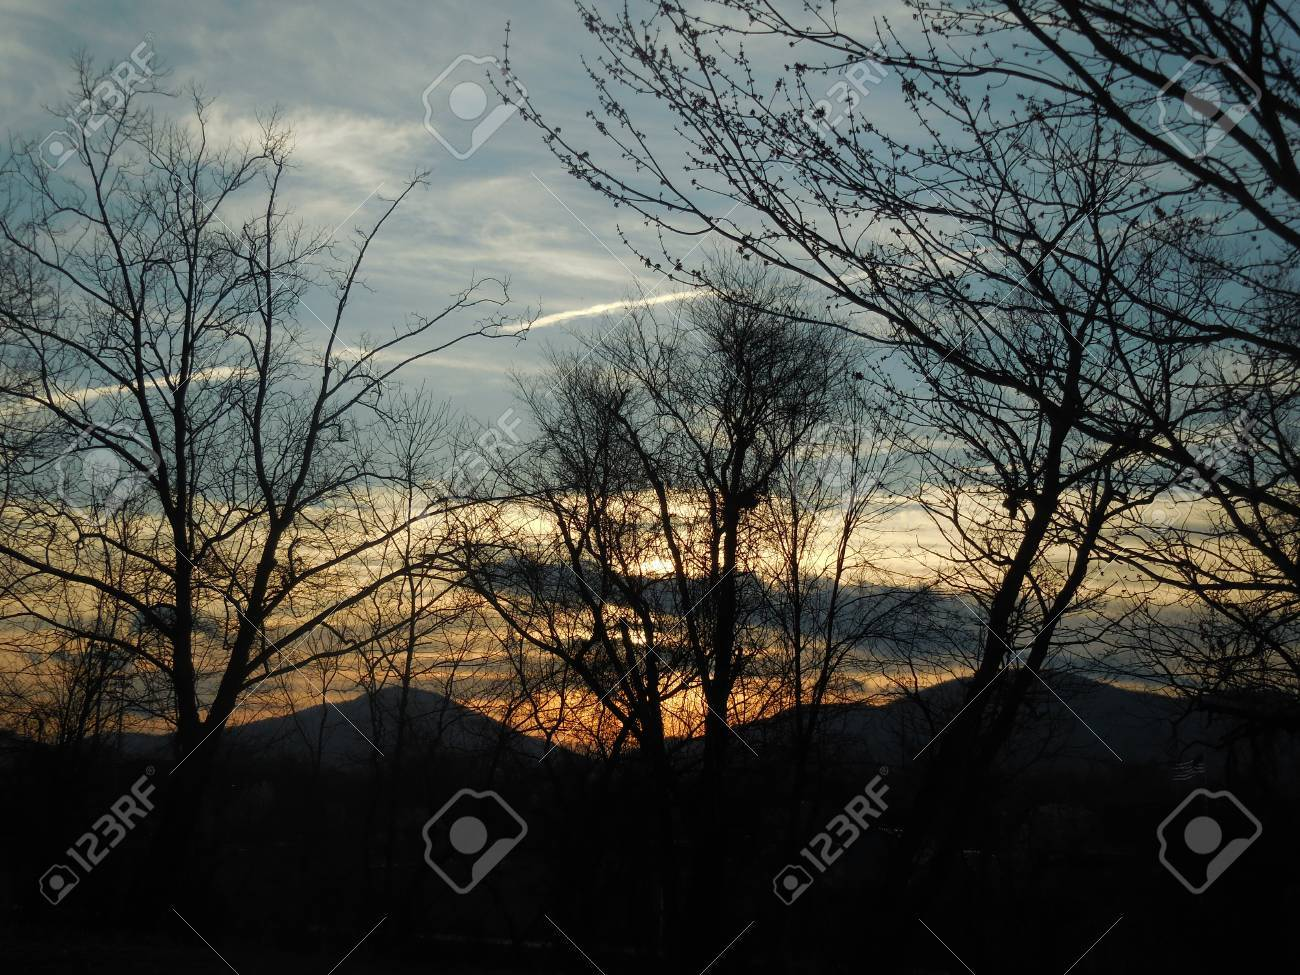 Sunrise in the mountains Stock Photo - 79424136